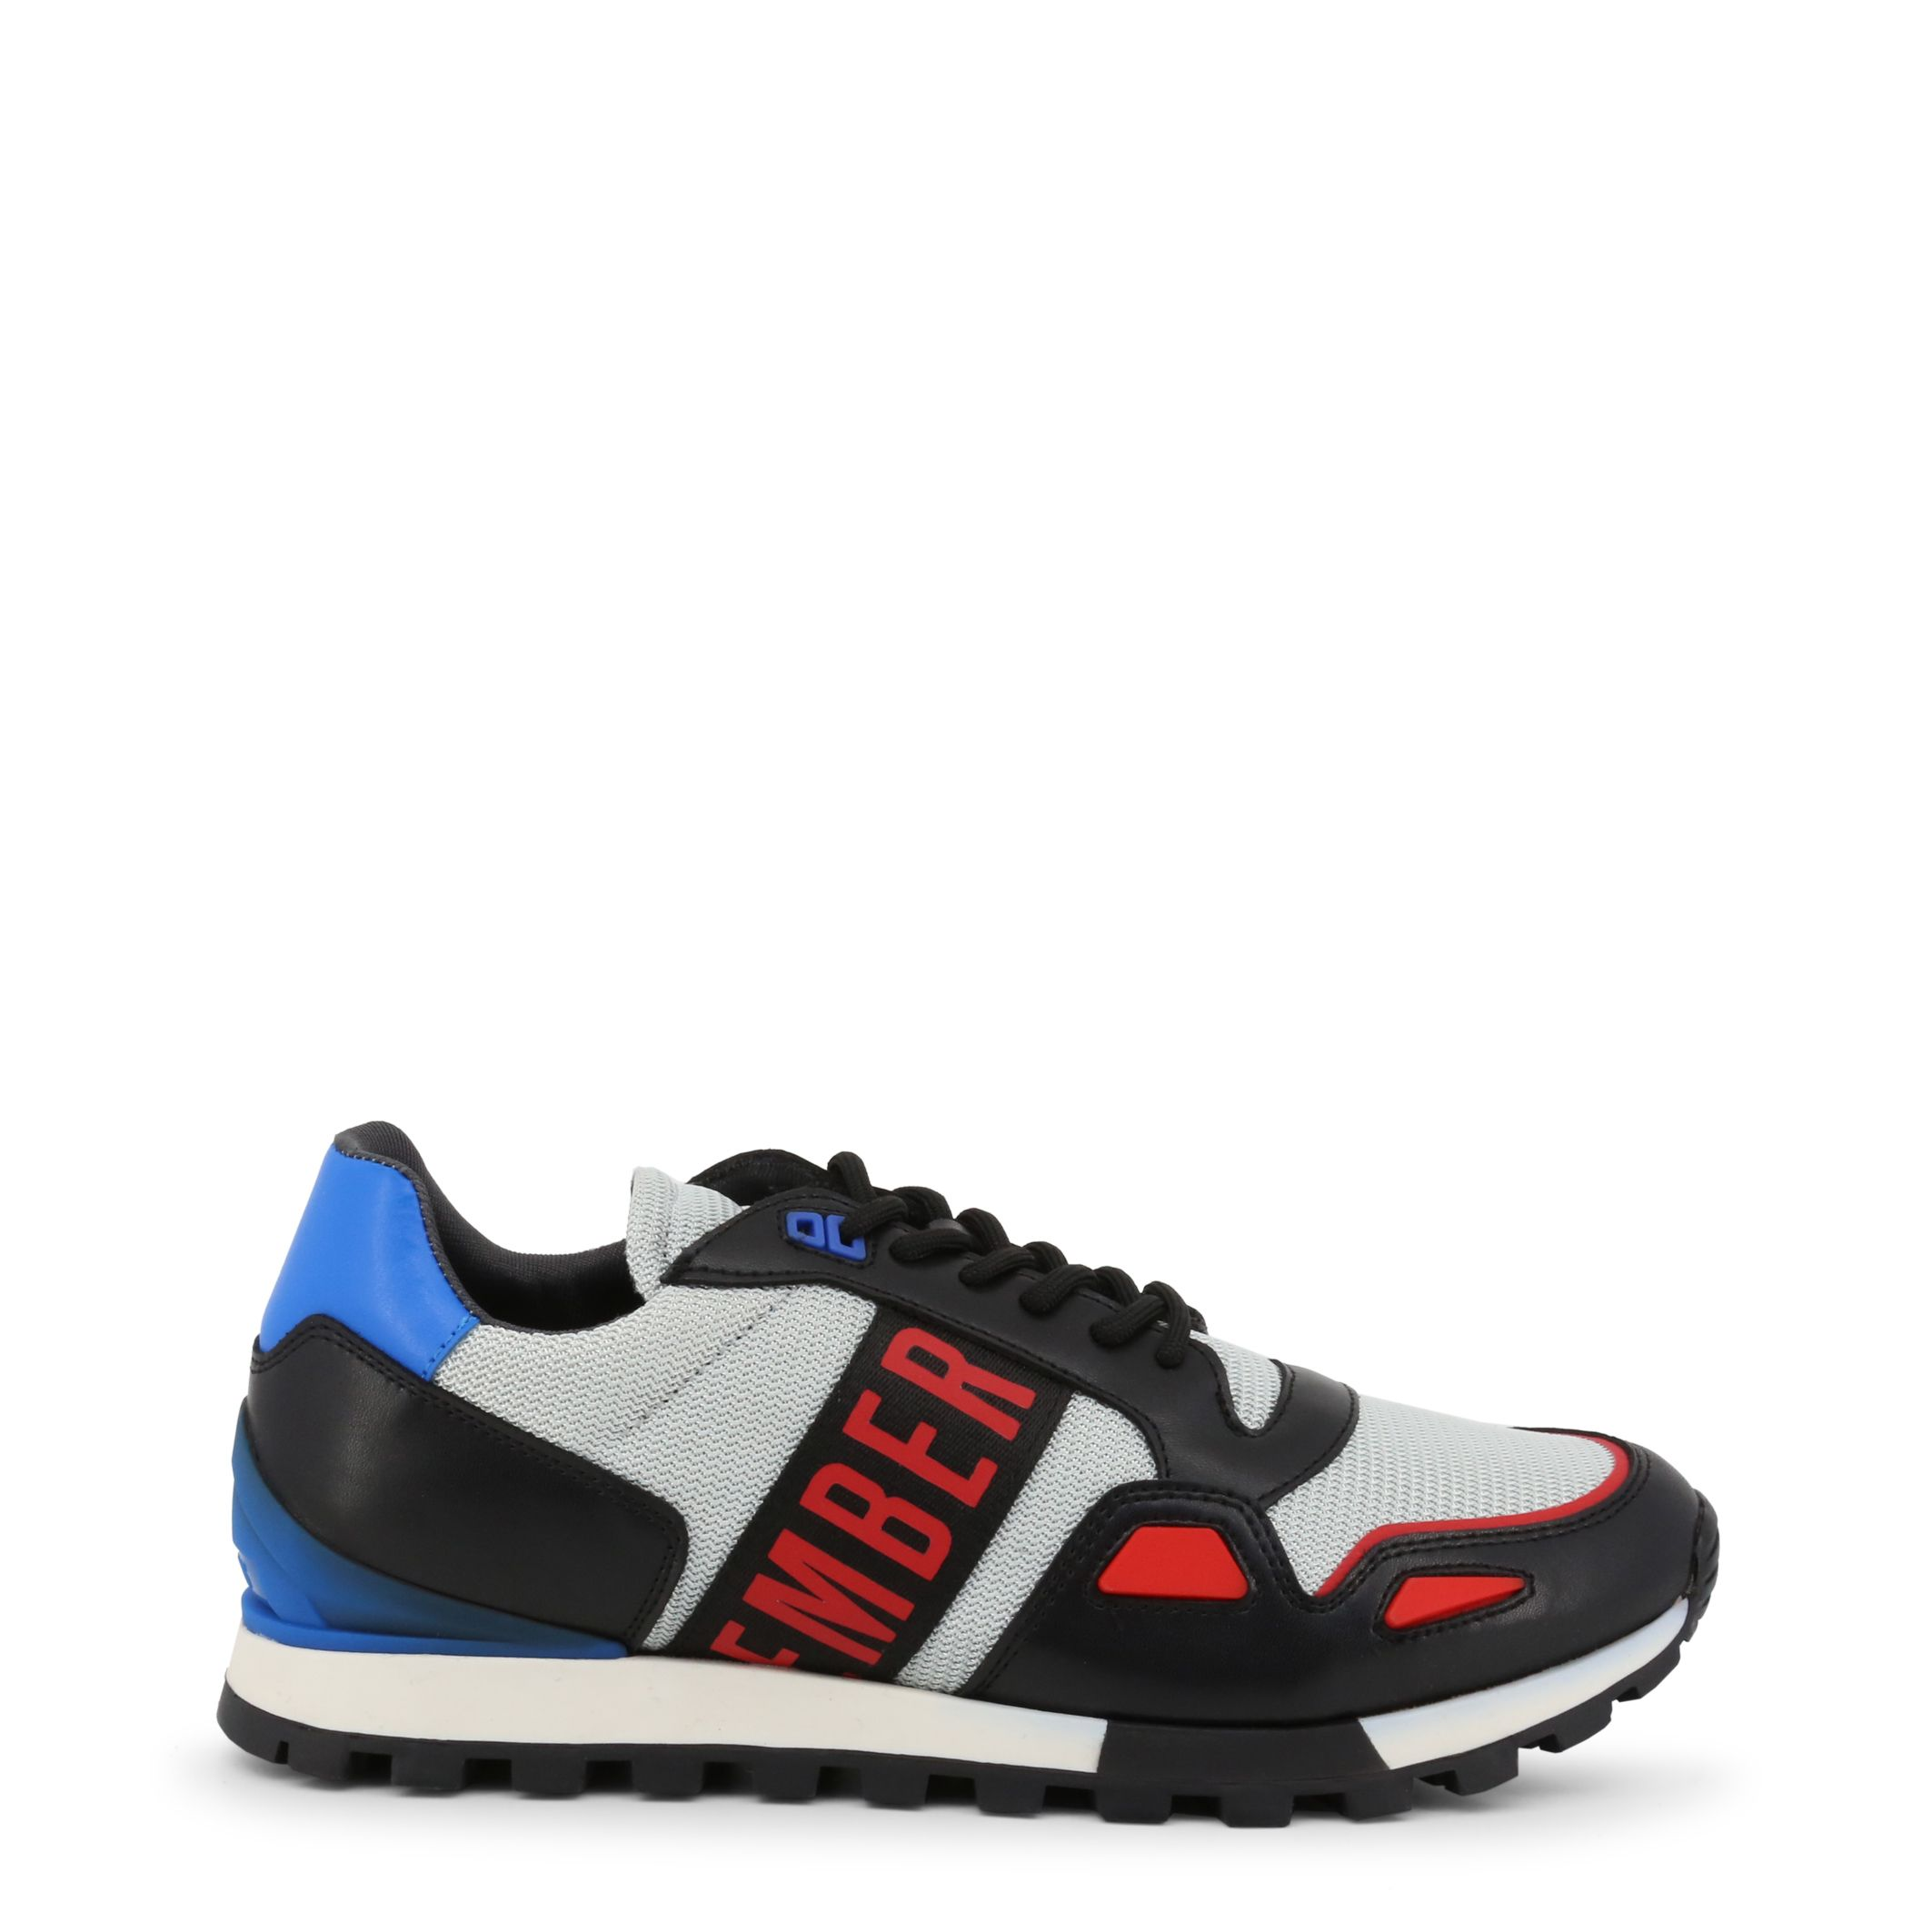 Bikkembergs Mens Sneakers